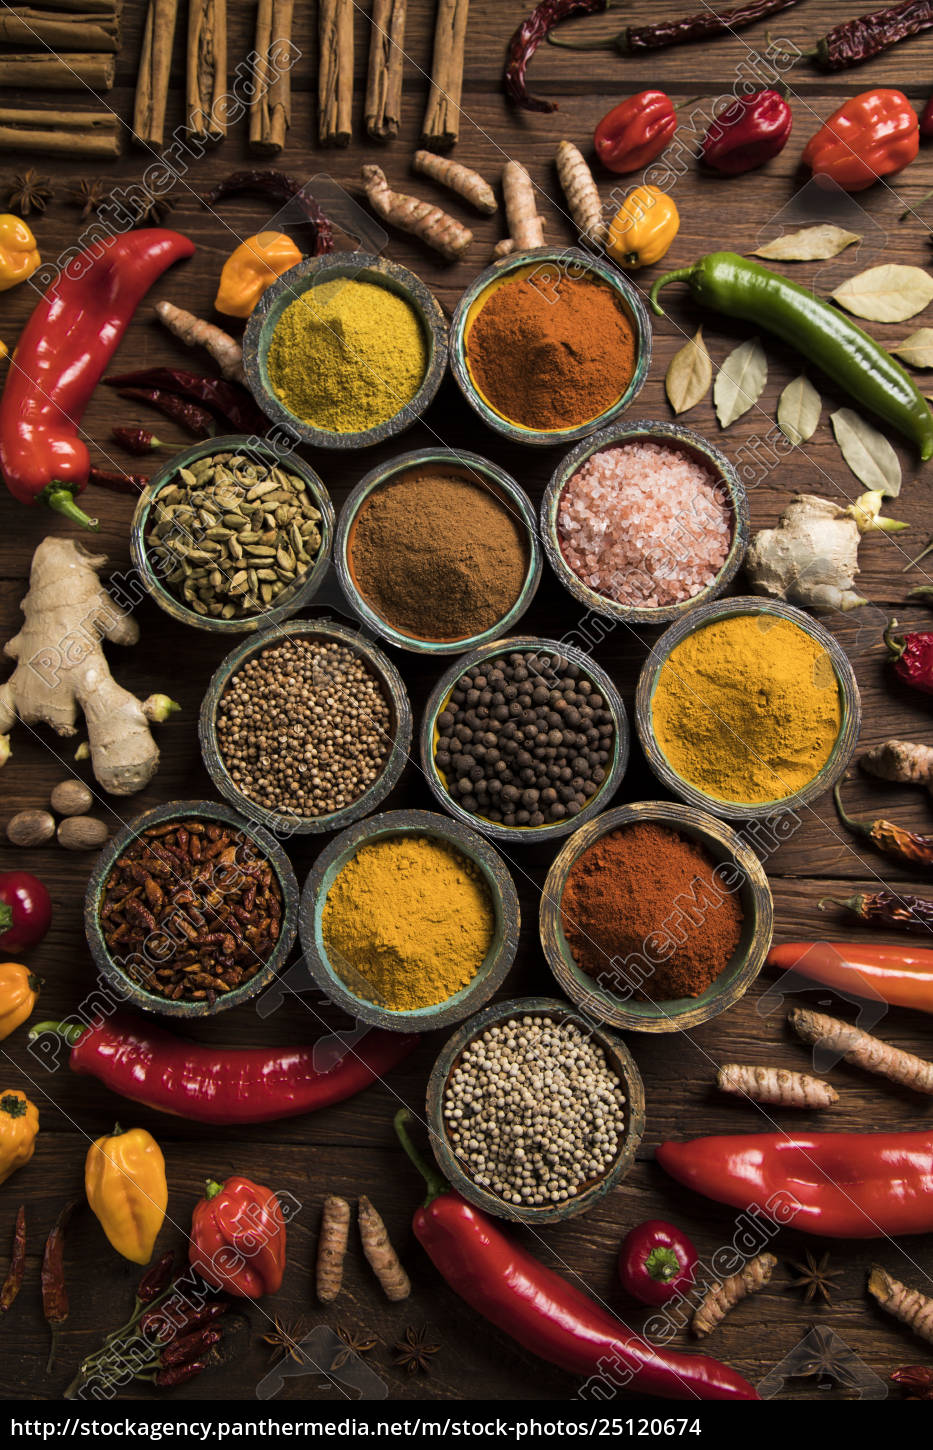 a, selection, of, various, colorful, spices - 25120674